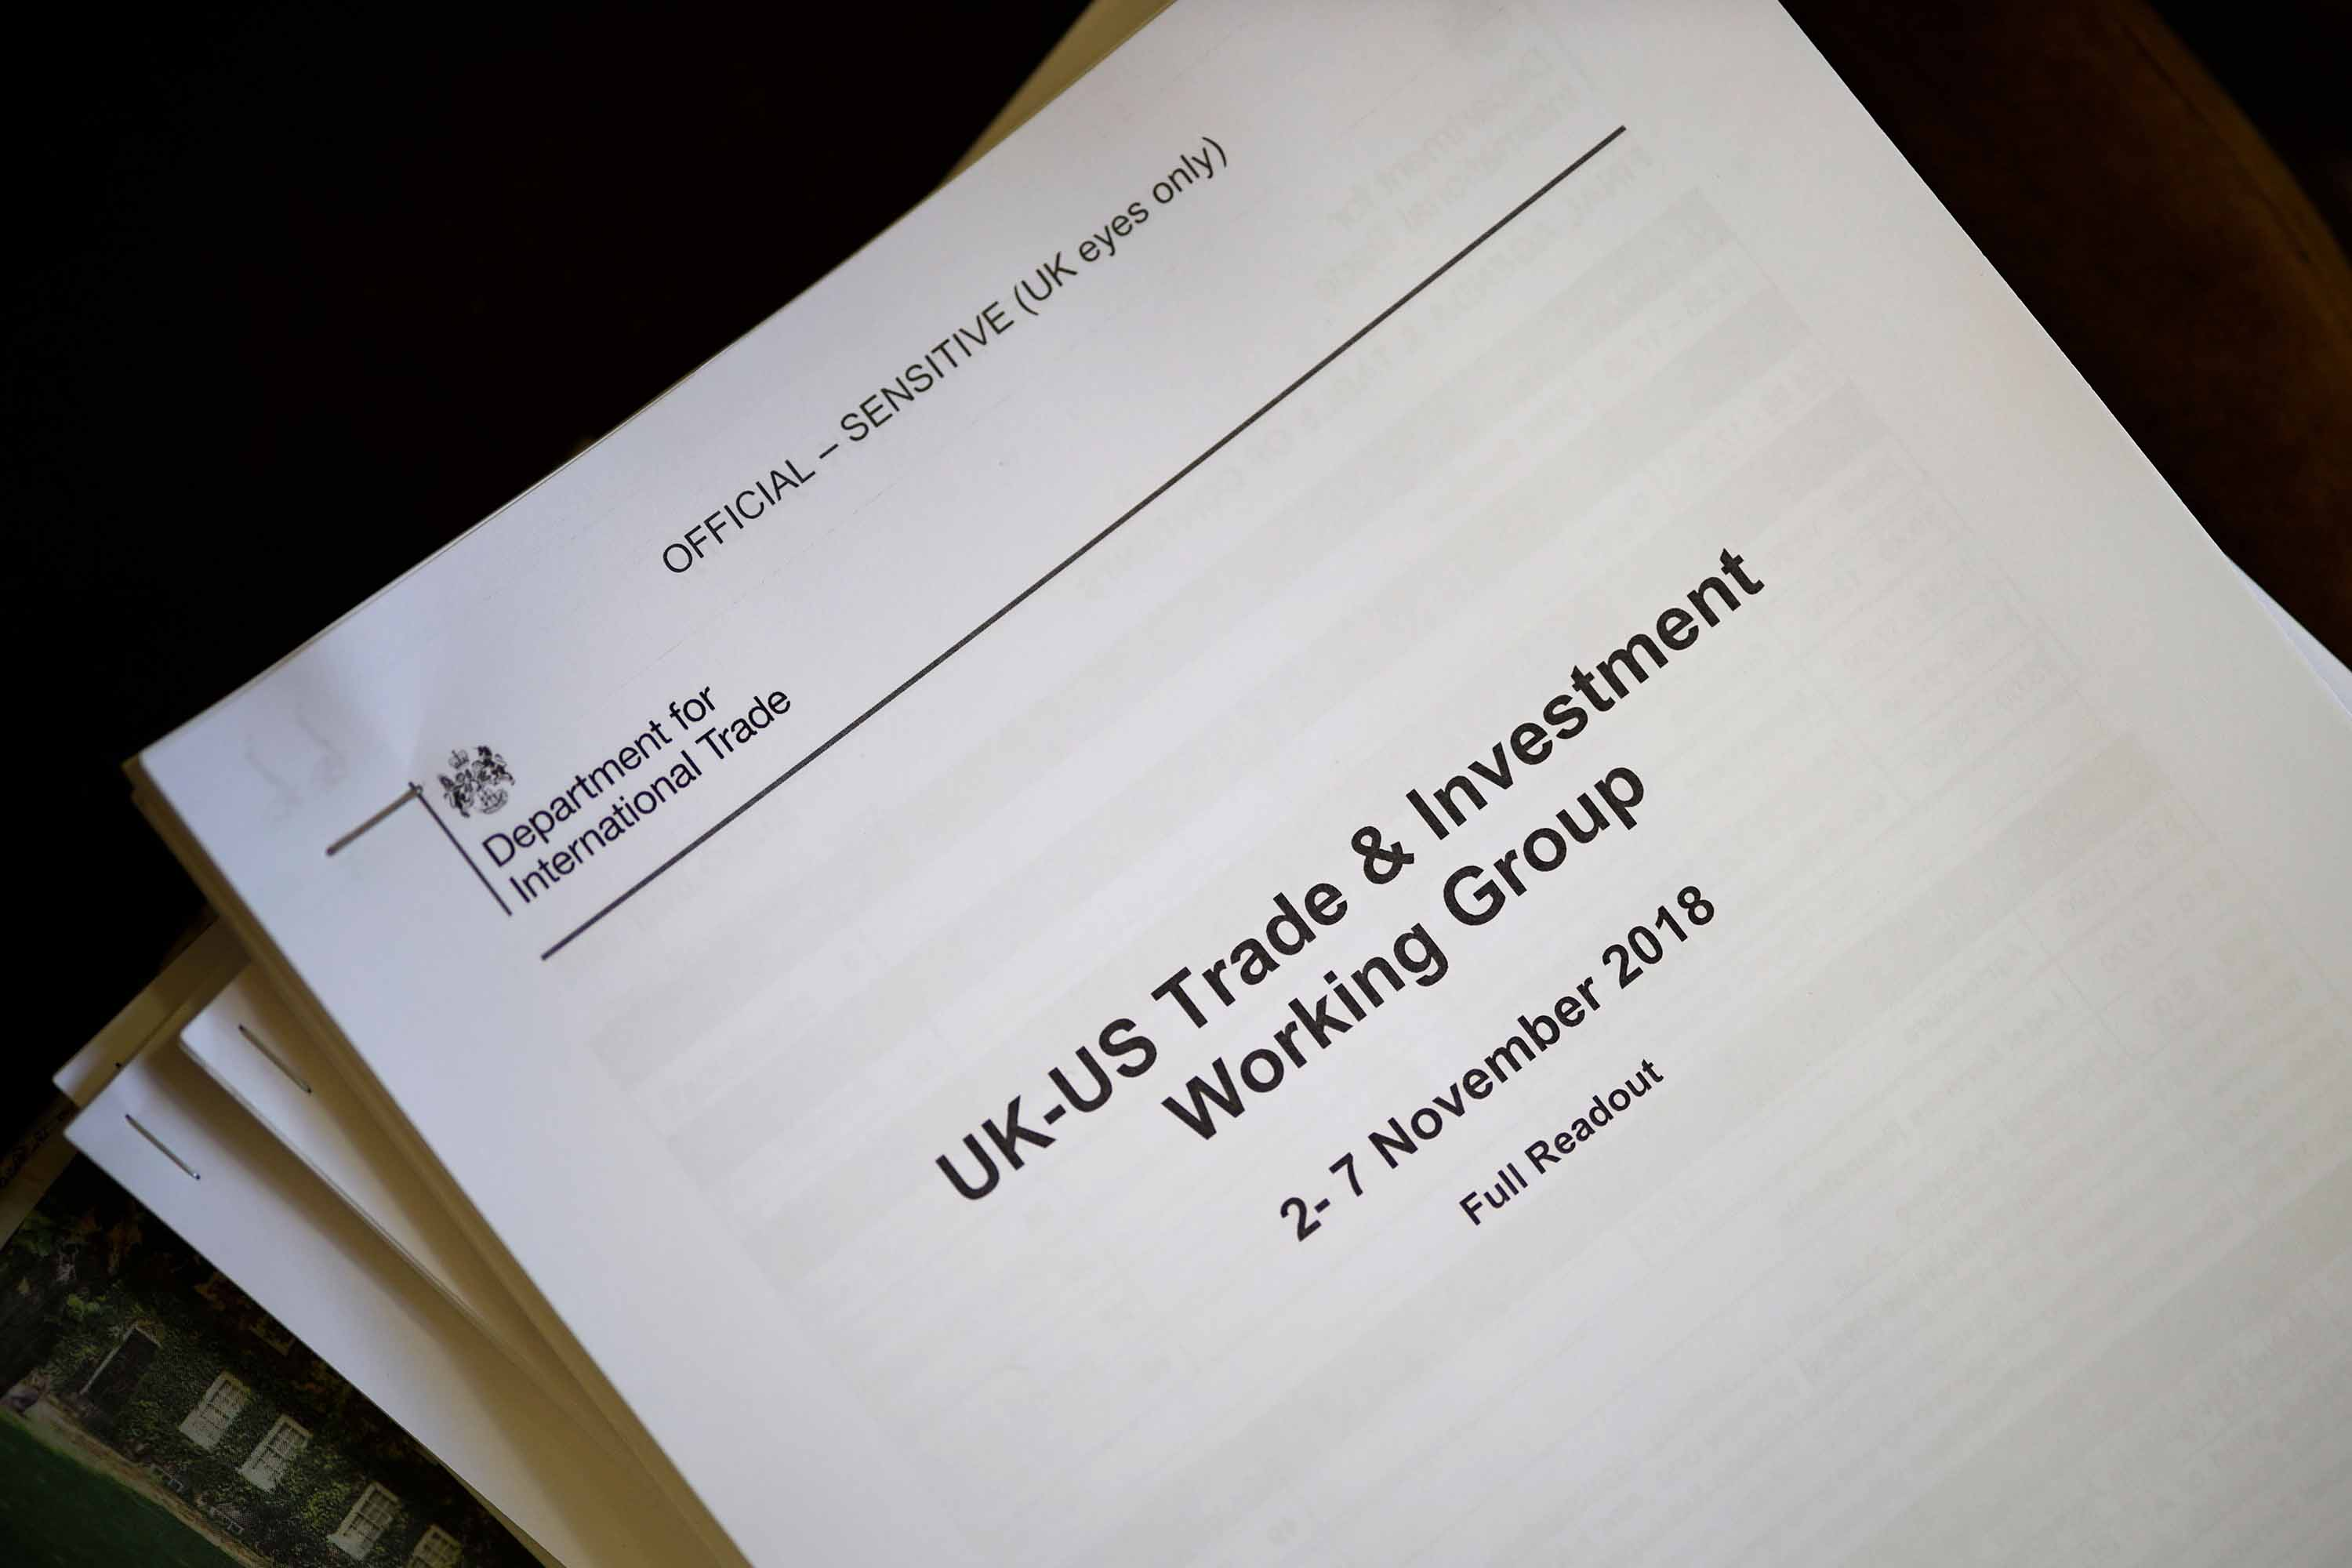 Documents concerning the Conservative government's UK-US trade talks were given to journalists during a press conference with UK opposition leader Jeremy Corbyn on November 27. Photo: Tolga Akmen/AFP via Getty Images